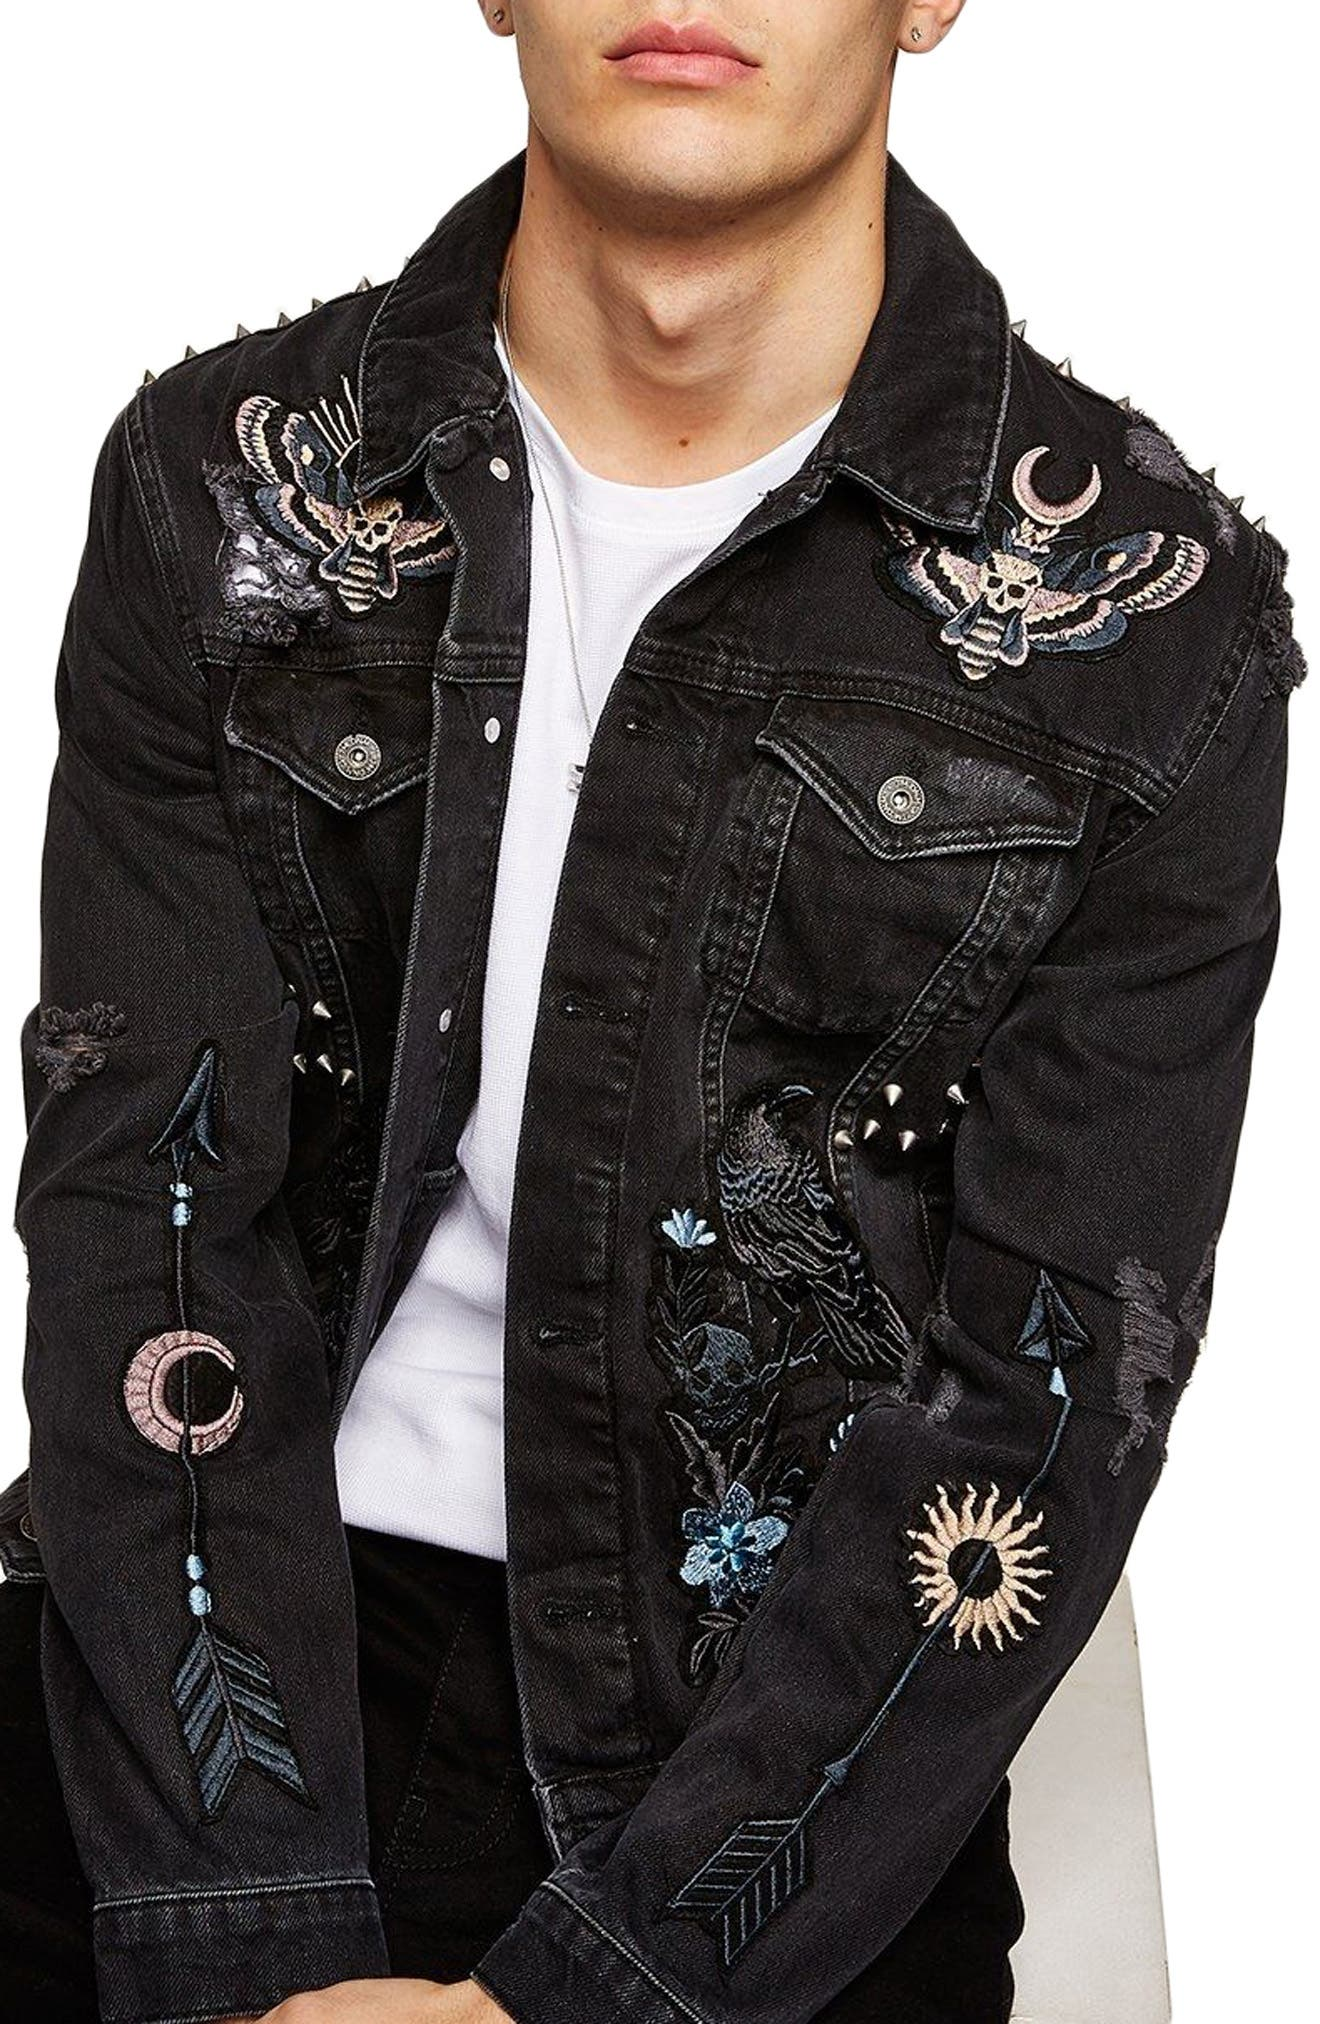 Sleepy Hollow Slim Fit Denim Jacket with Patches,                         Main,                         color, Black Multi